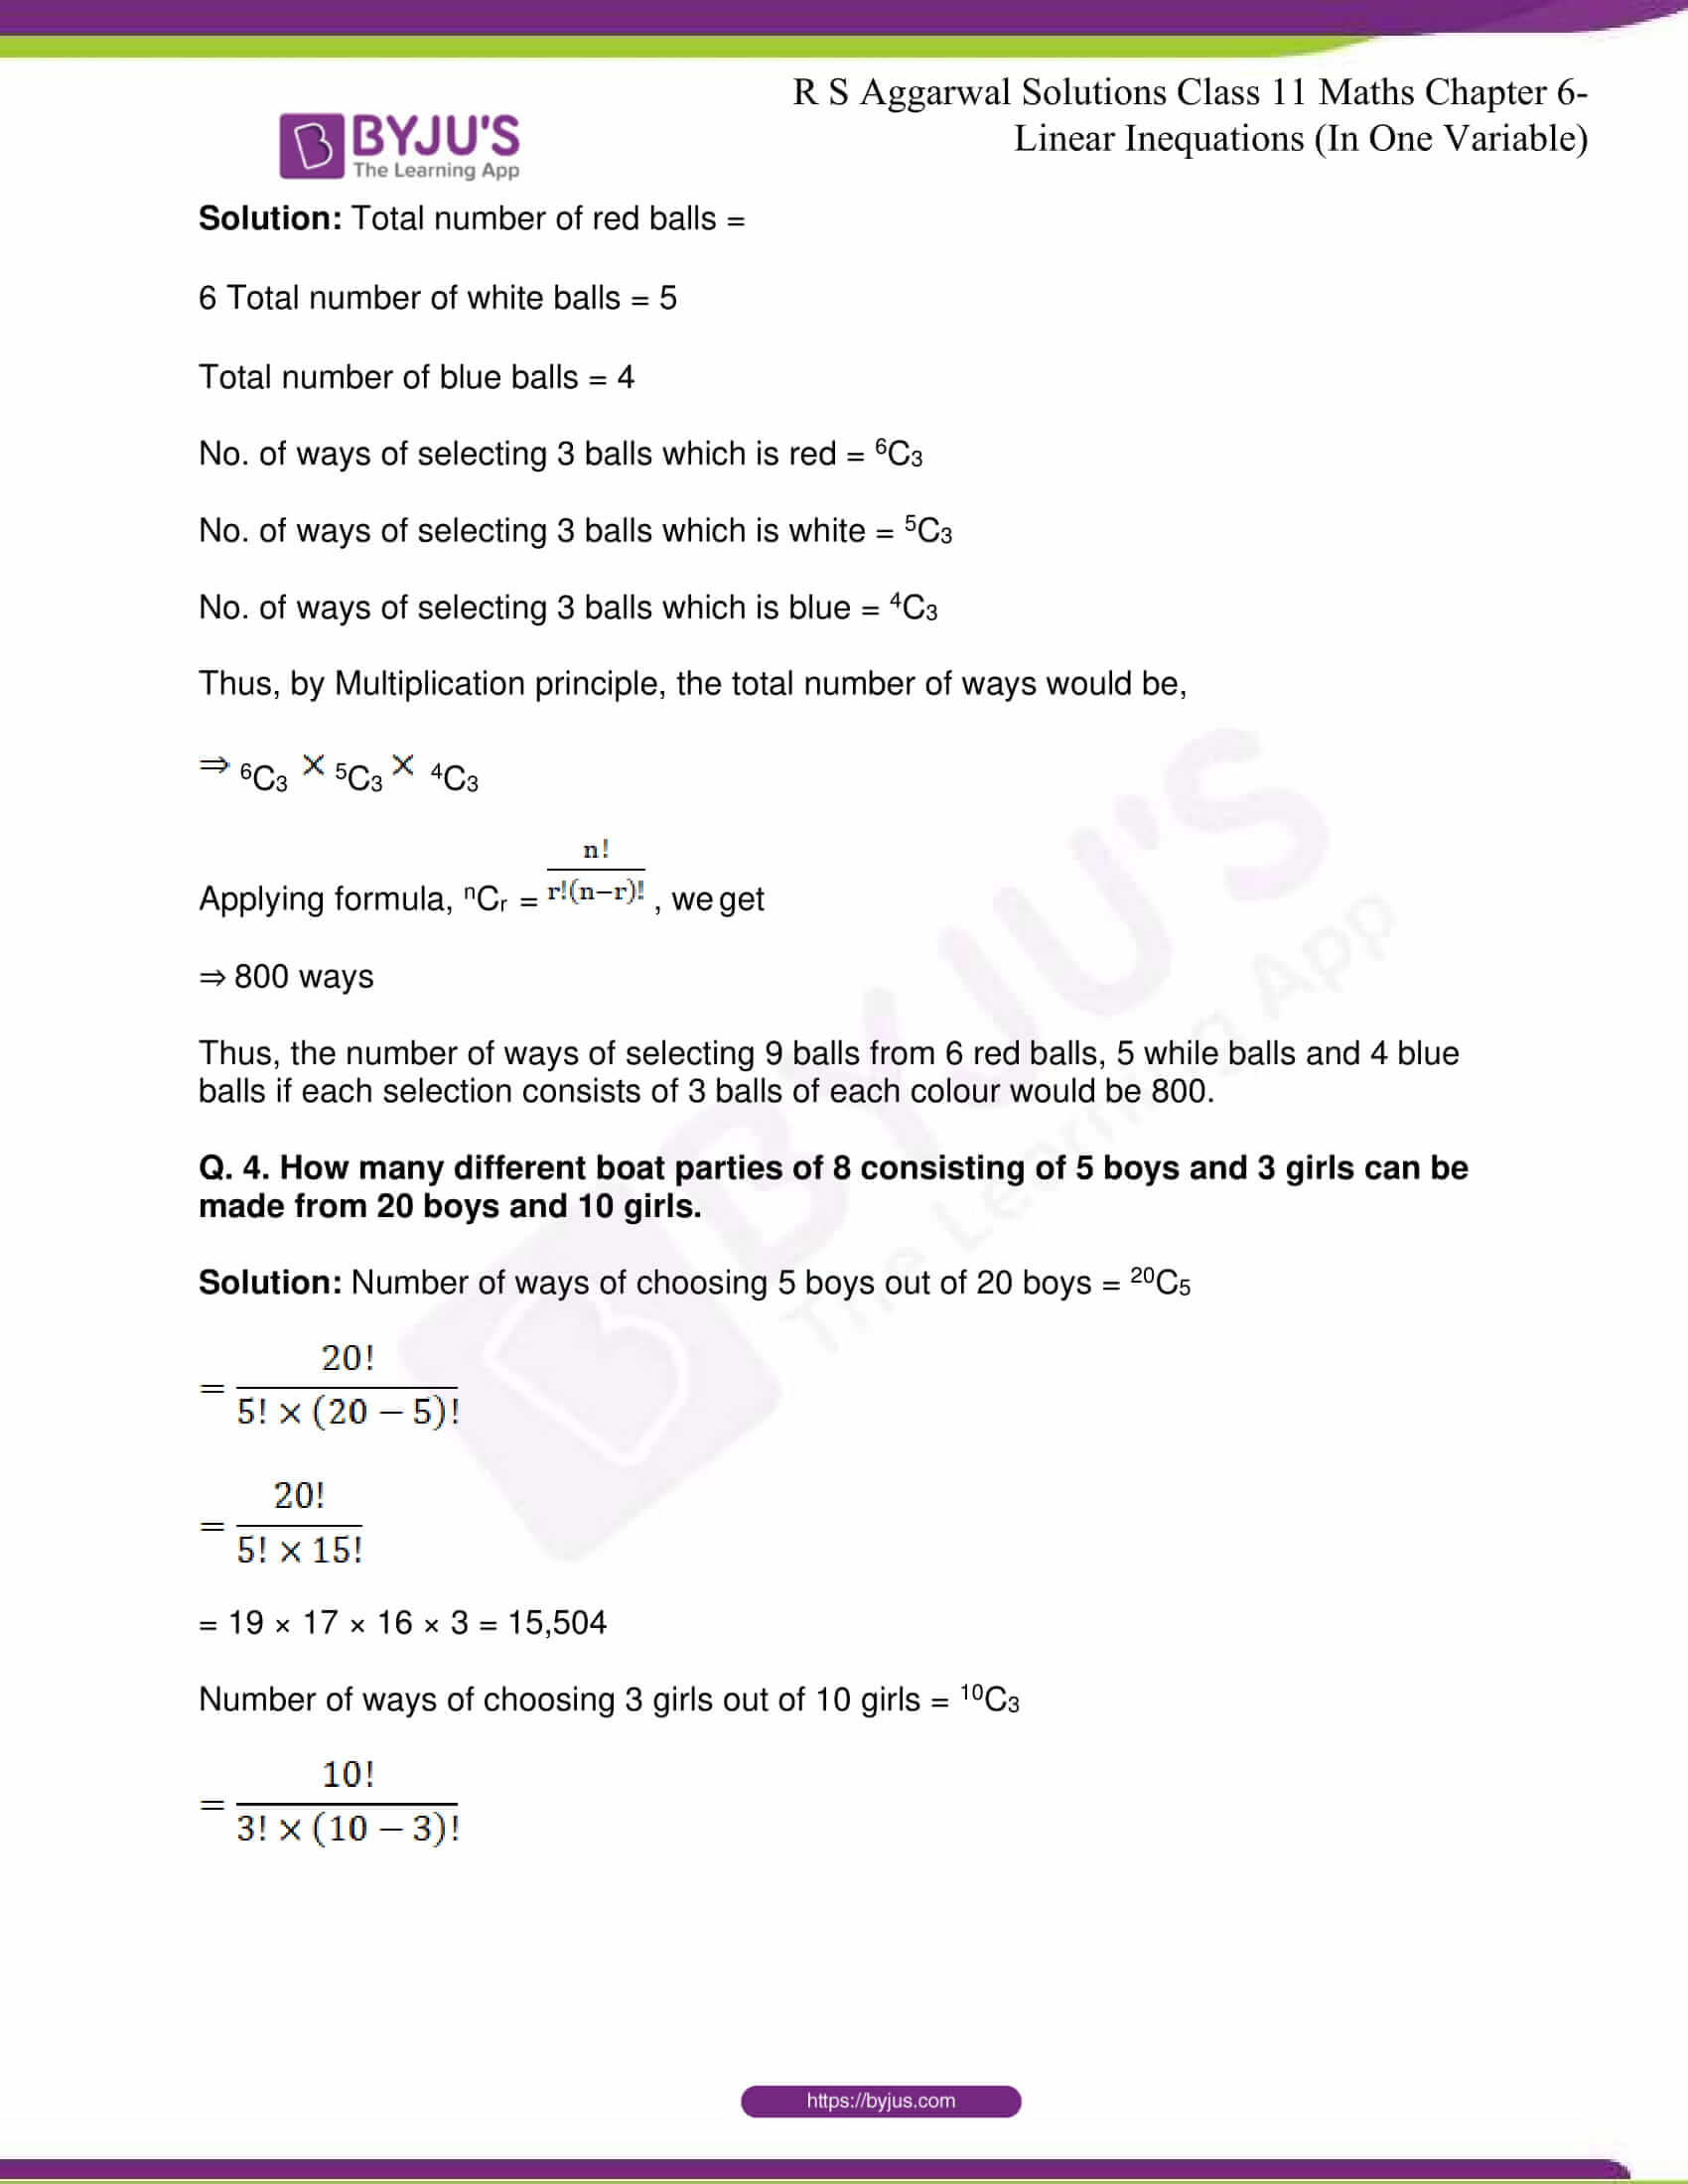 RS Aggarwal Sol Class 11 Maths Chapter 9